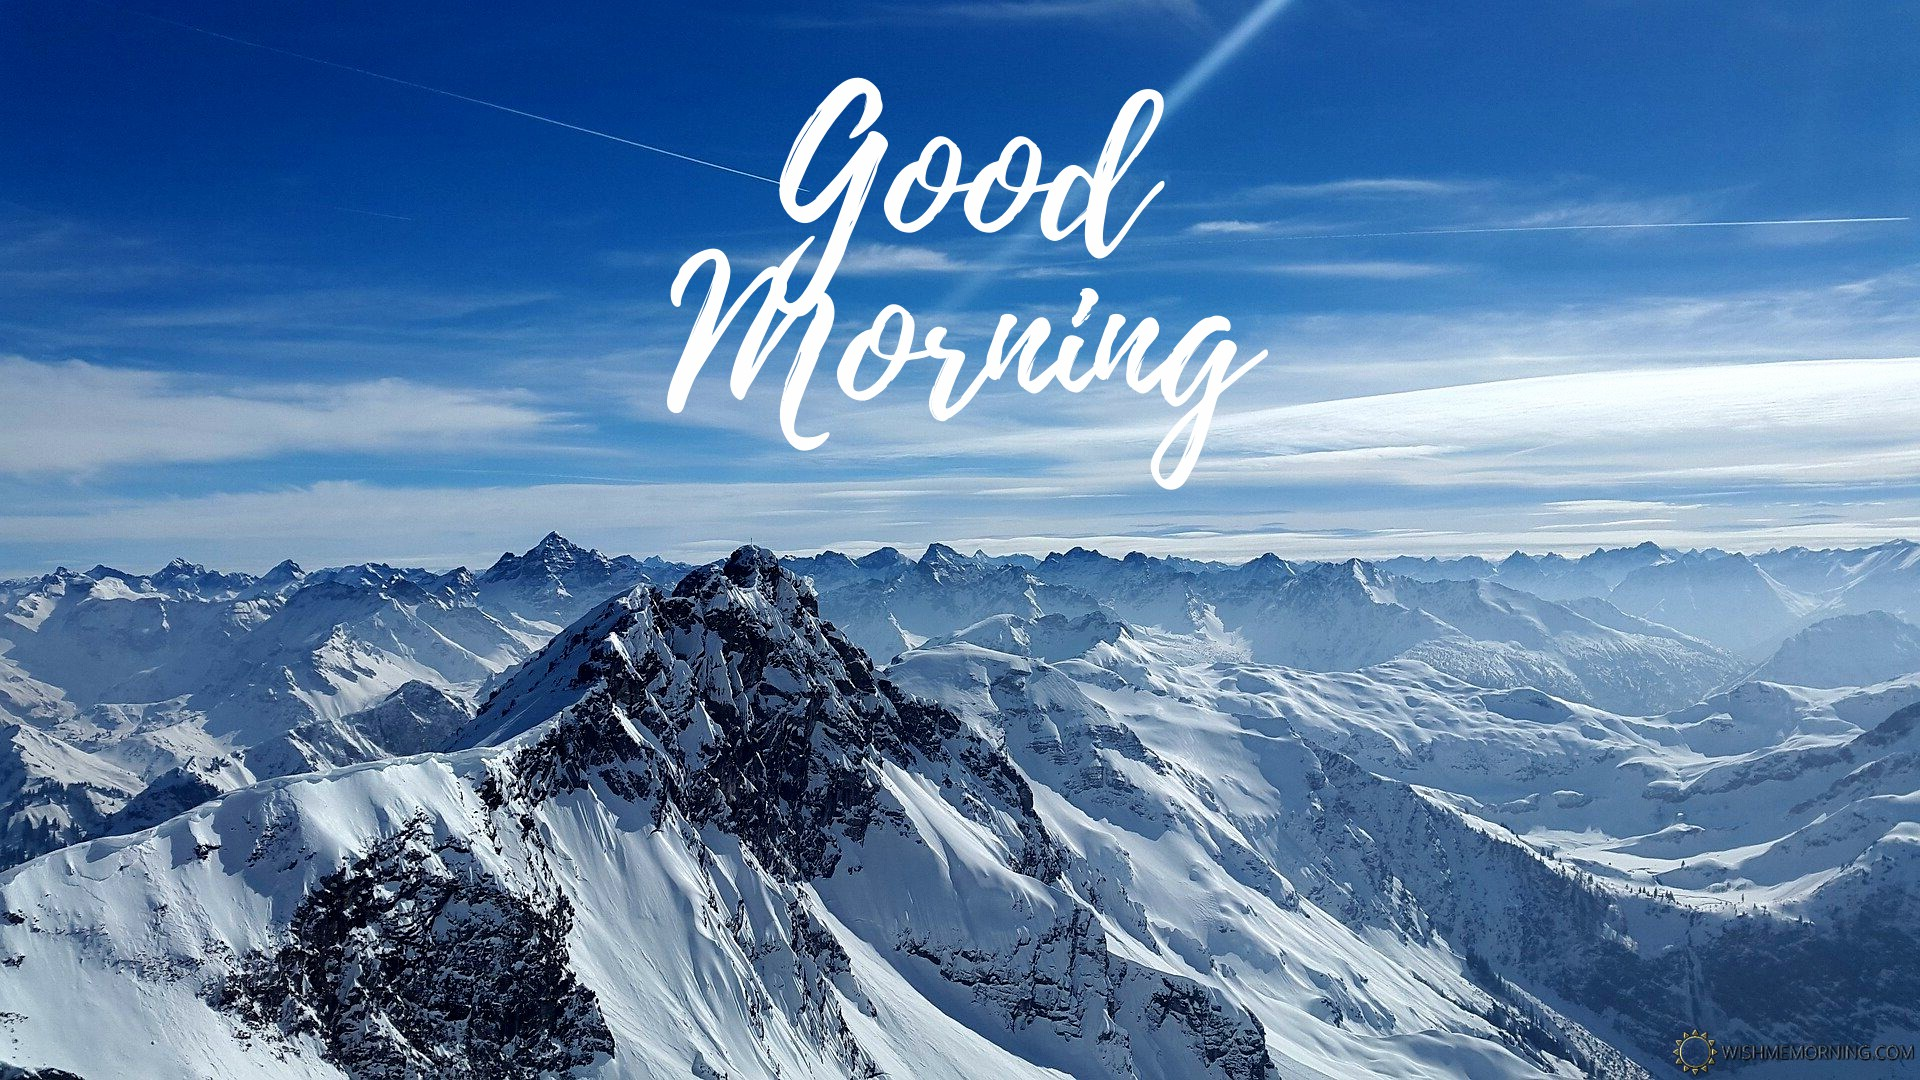 Rough Horn Good Morning Image Snowy Mountains